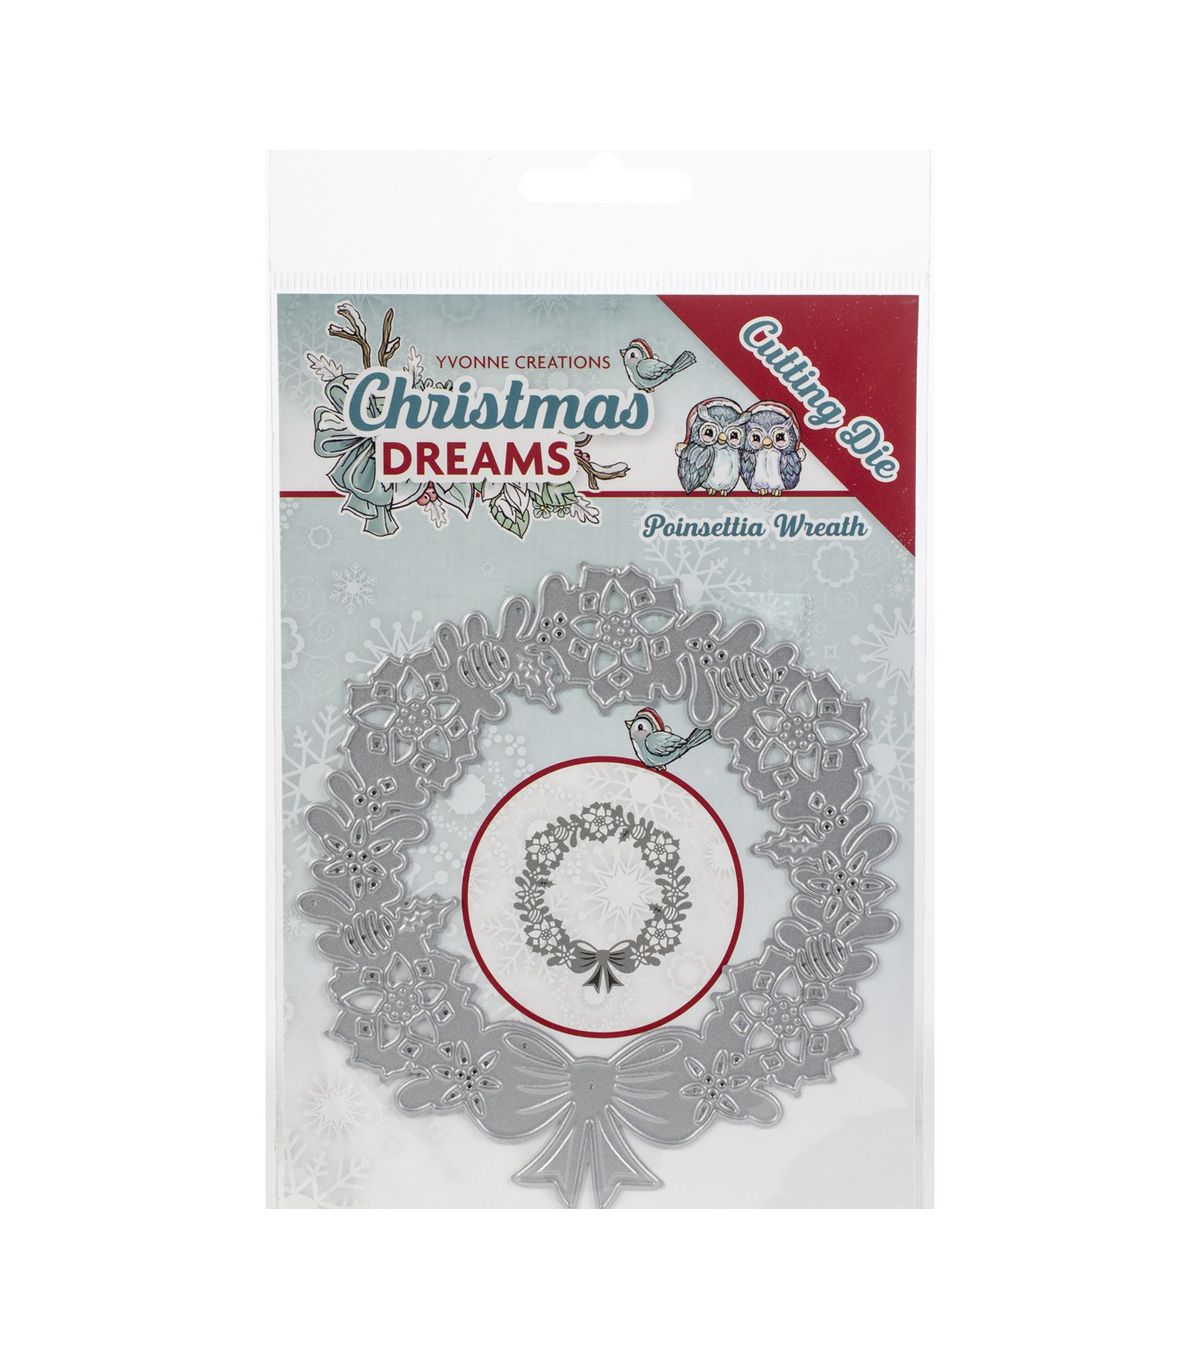 Find It Trading Yvonne Creations Christmas Dreams Die-Poinsettia Wreath